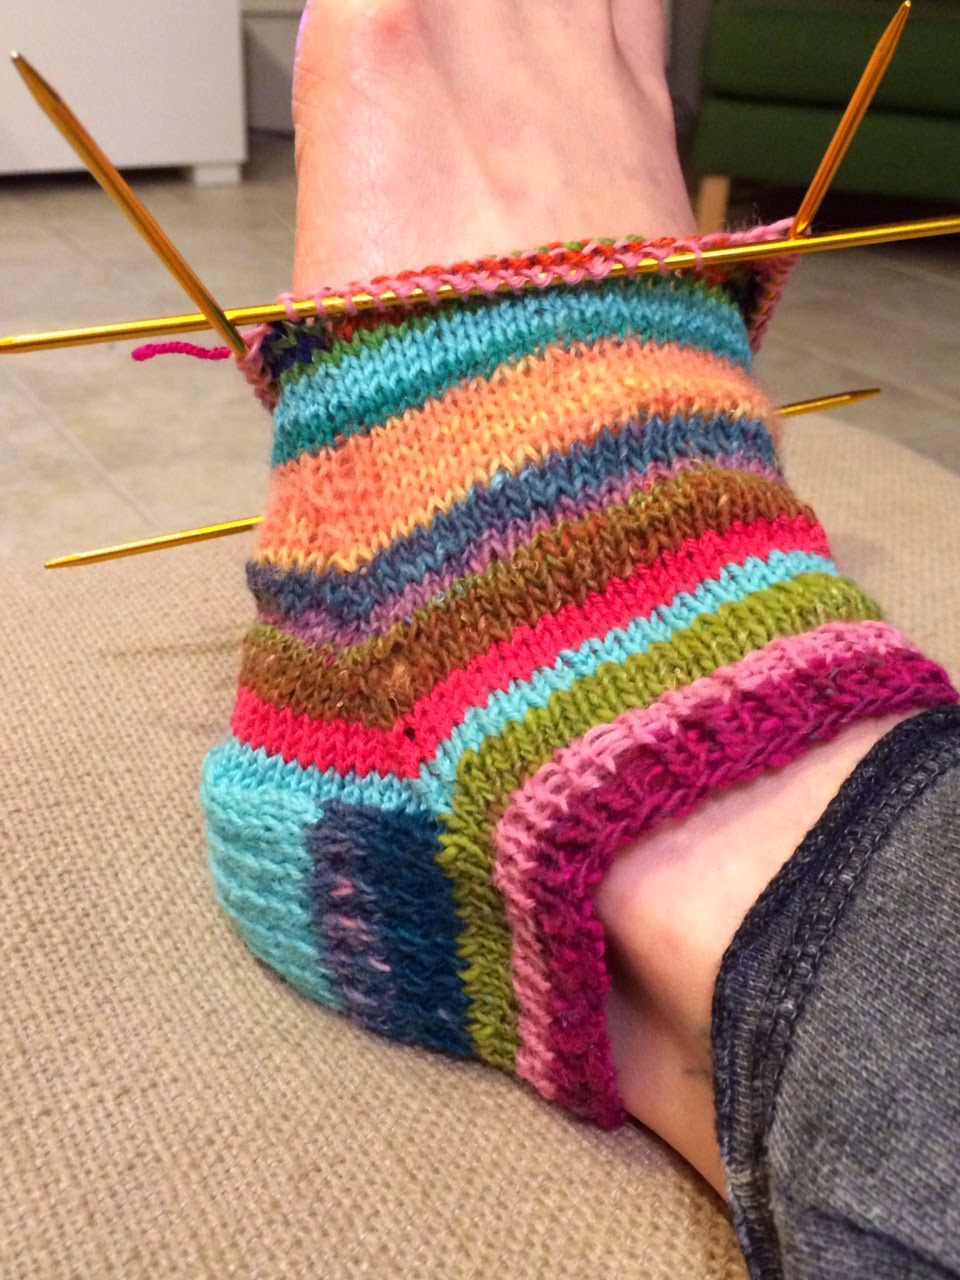 with socks. Ive always been intimidated by the thought of knitting ...